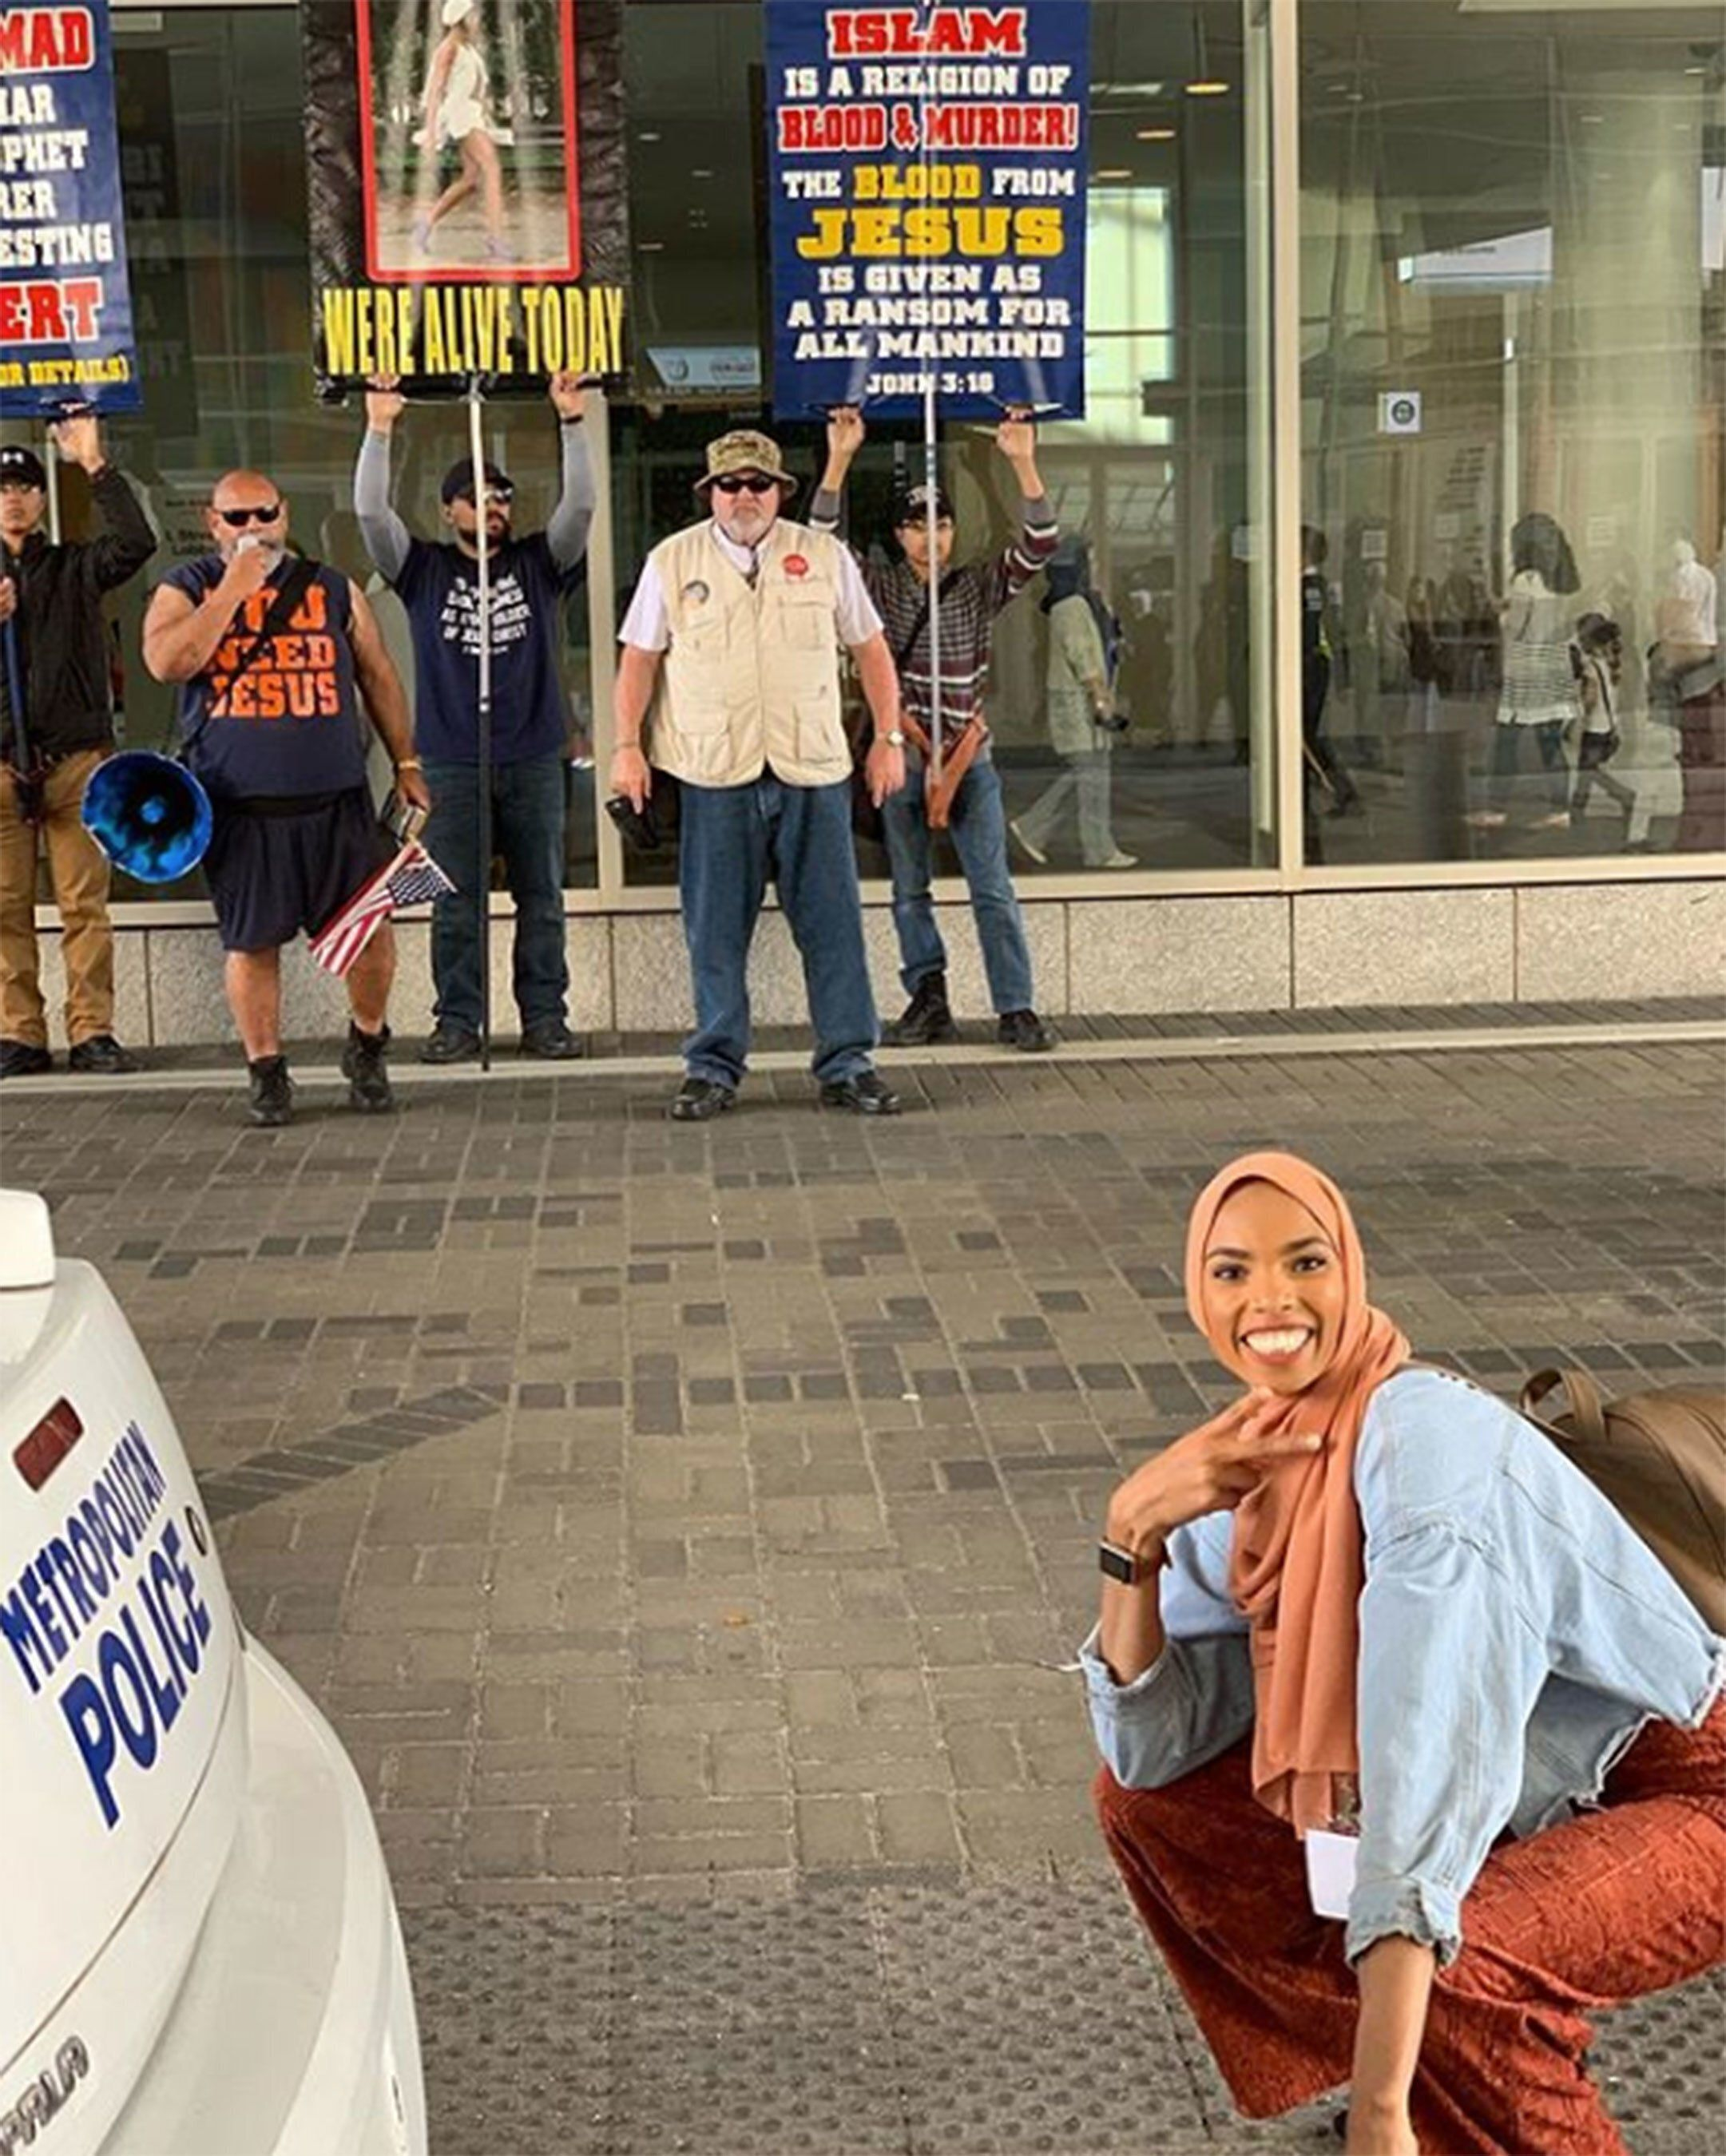 Muslim Woman Responds To Bigotry With A Smile In Photo With